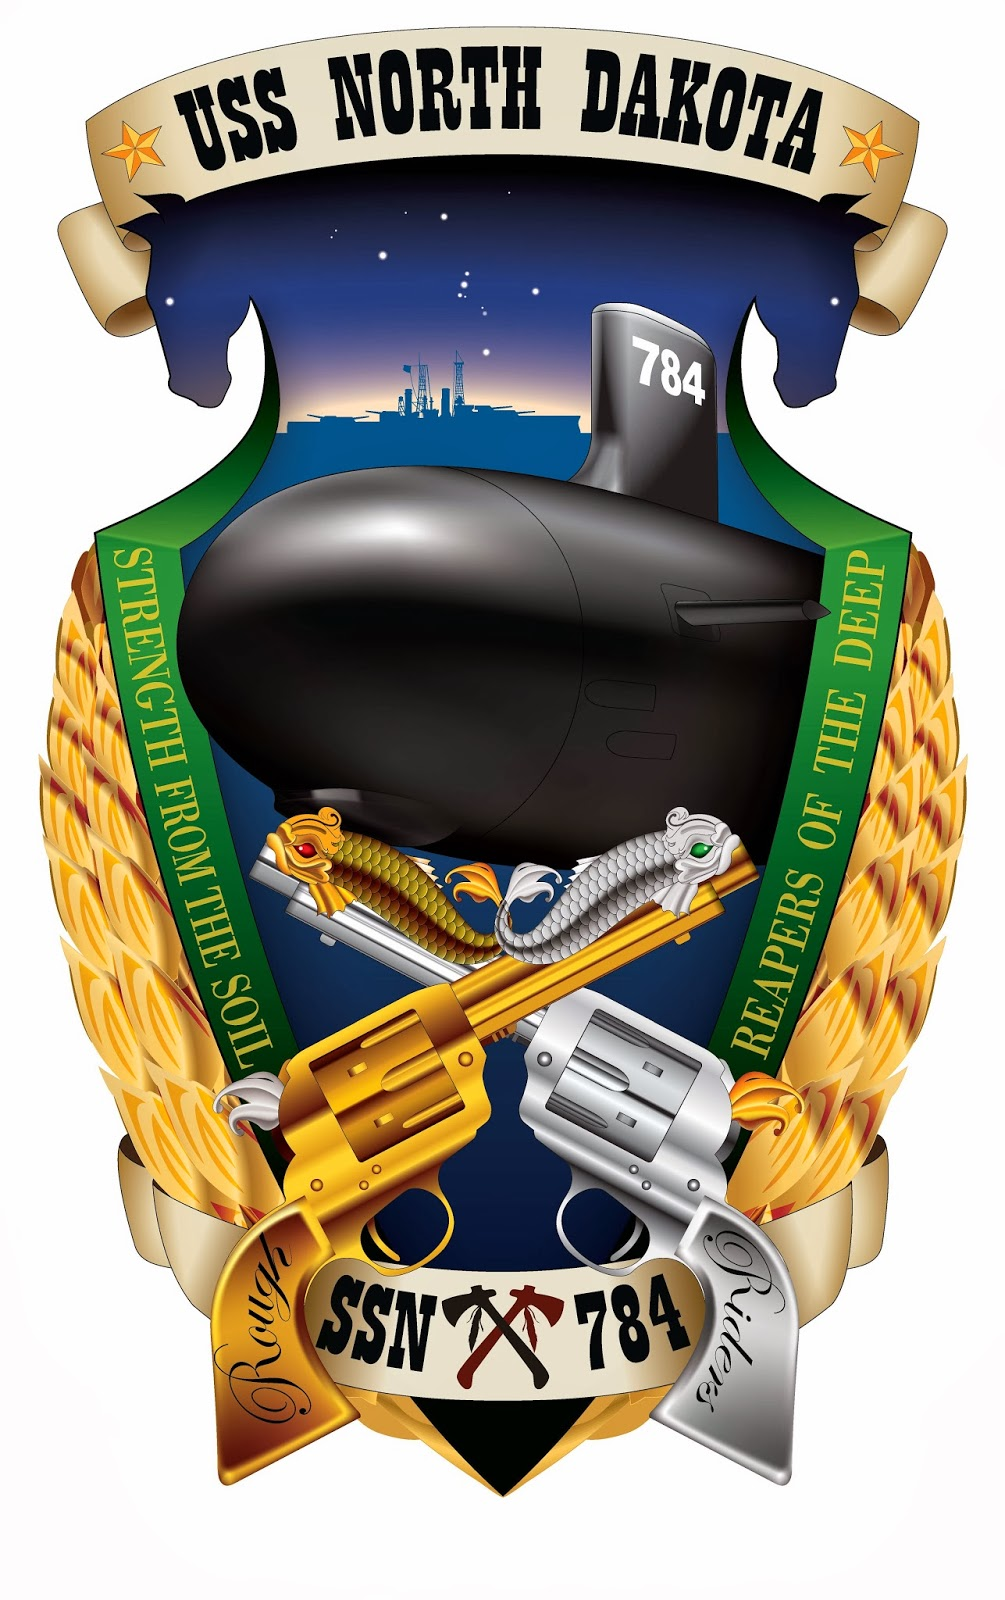 Navy submarine North Dakota's crest shows wheat sheafs, Wild West six-shooters and other symbols of the state.